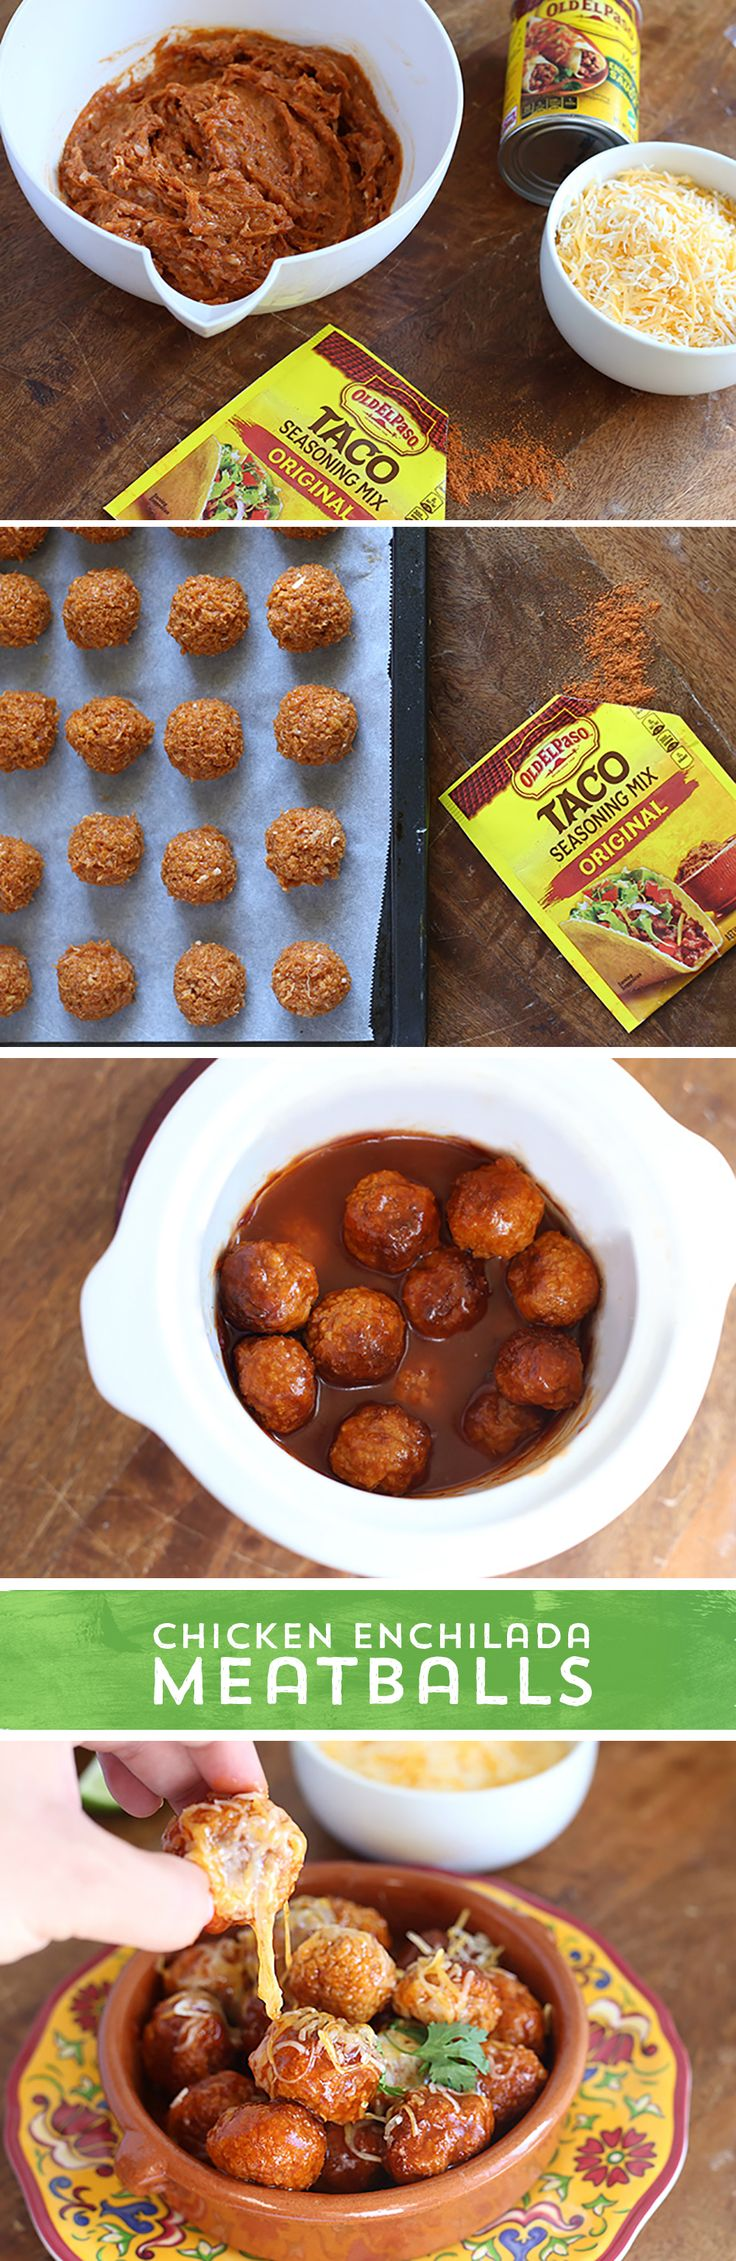 Need a party appetizer that your whole crowd is sure to love, but don't have a lot of time for prep? These Chicken Enchilada Meatballs from @HungryFoodLove are perfect! With just 5 simple ingredients and 20 minutes prep, your Slow Cooker handles the rest! These Meatballs are packed with the enchilada flavor you love combined with the snacking pleasure of easy meatballs!